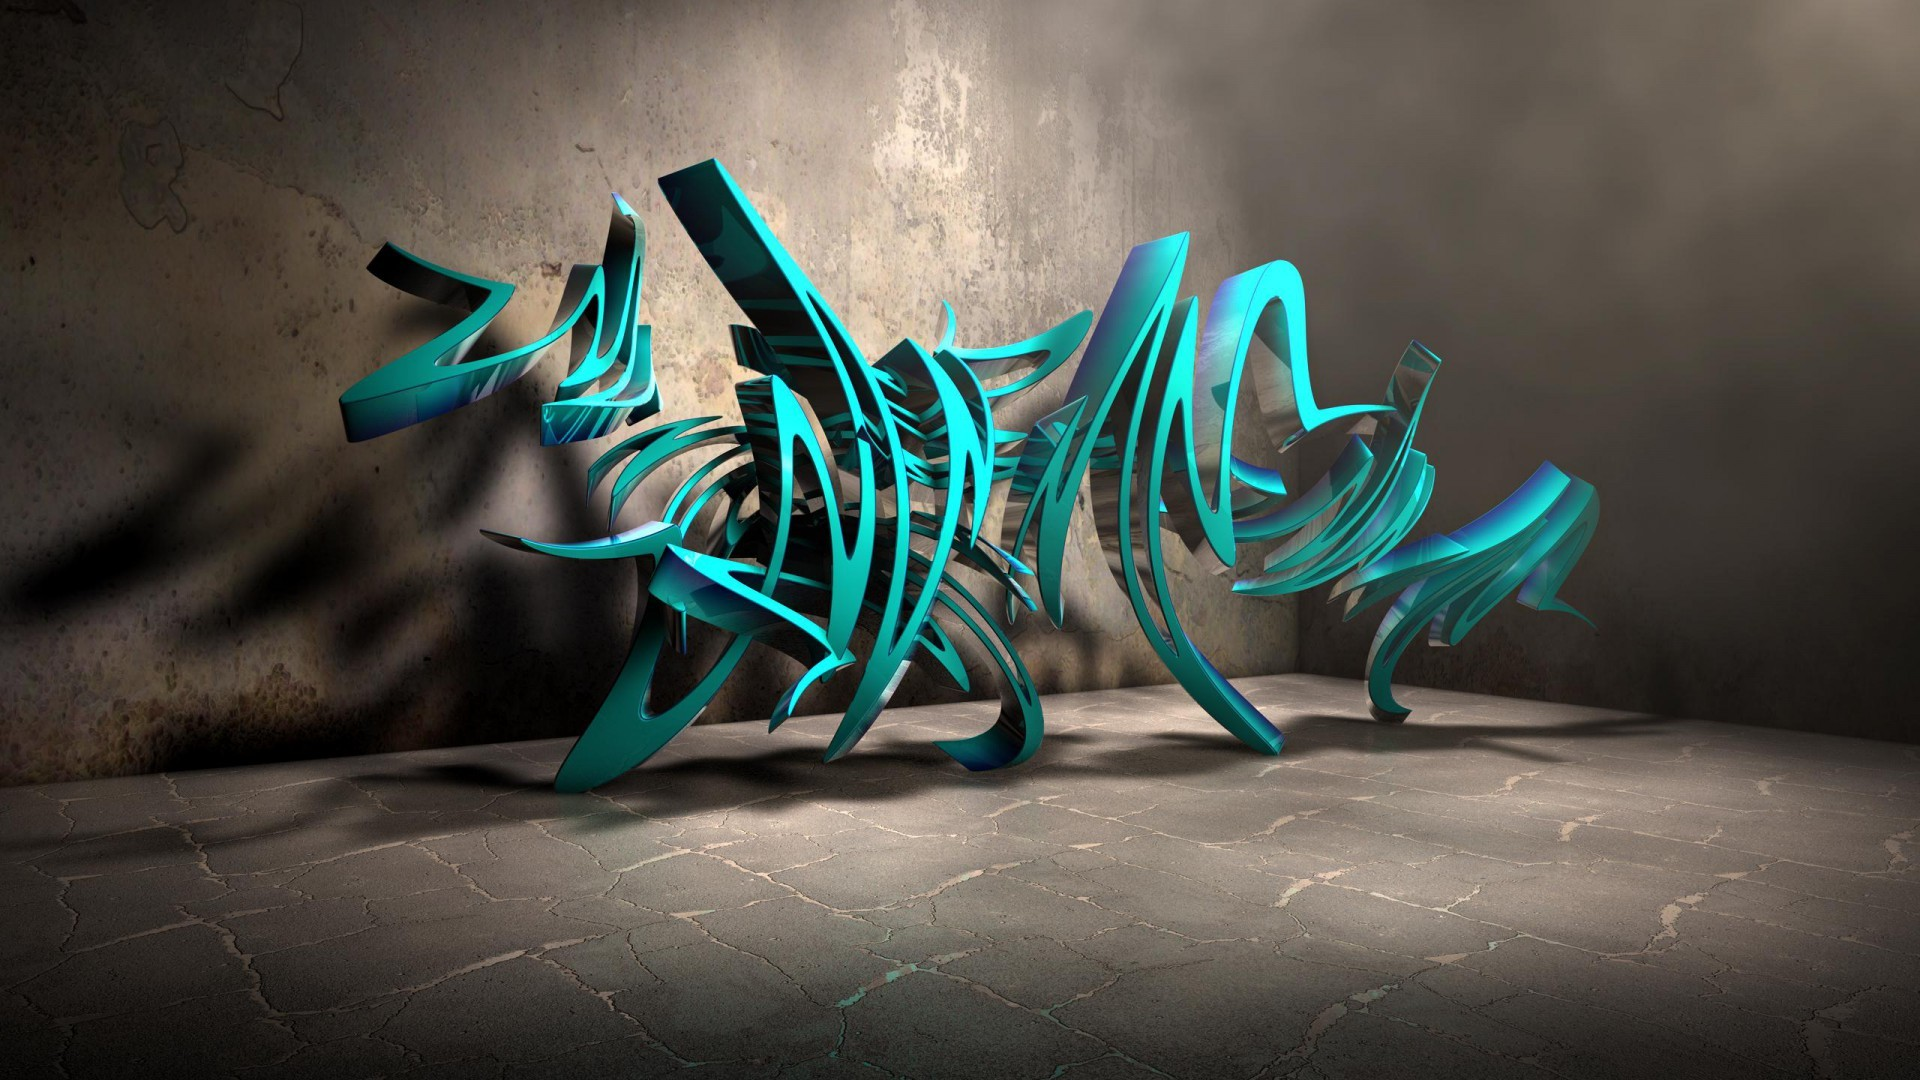 Hd graffiti wallpapers 1080p 63 images 1920x1080 hd graffiti wallpapers wallpaper 19201080 graffiti hd backgrounds 41 wallpapers voltagebd Image collections